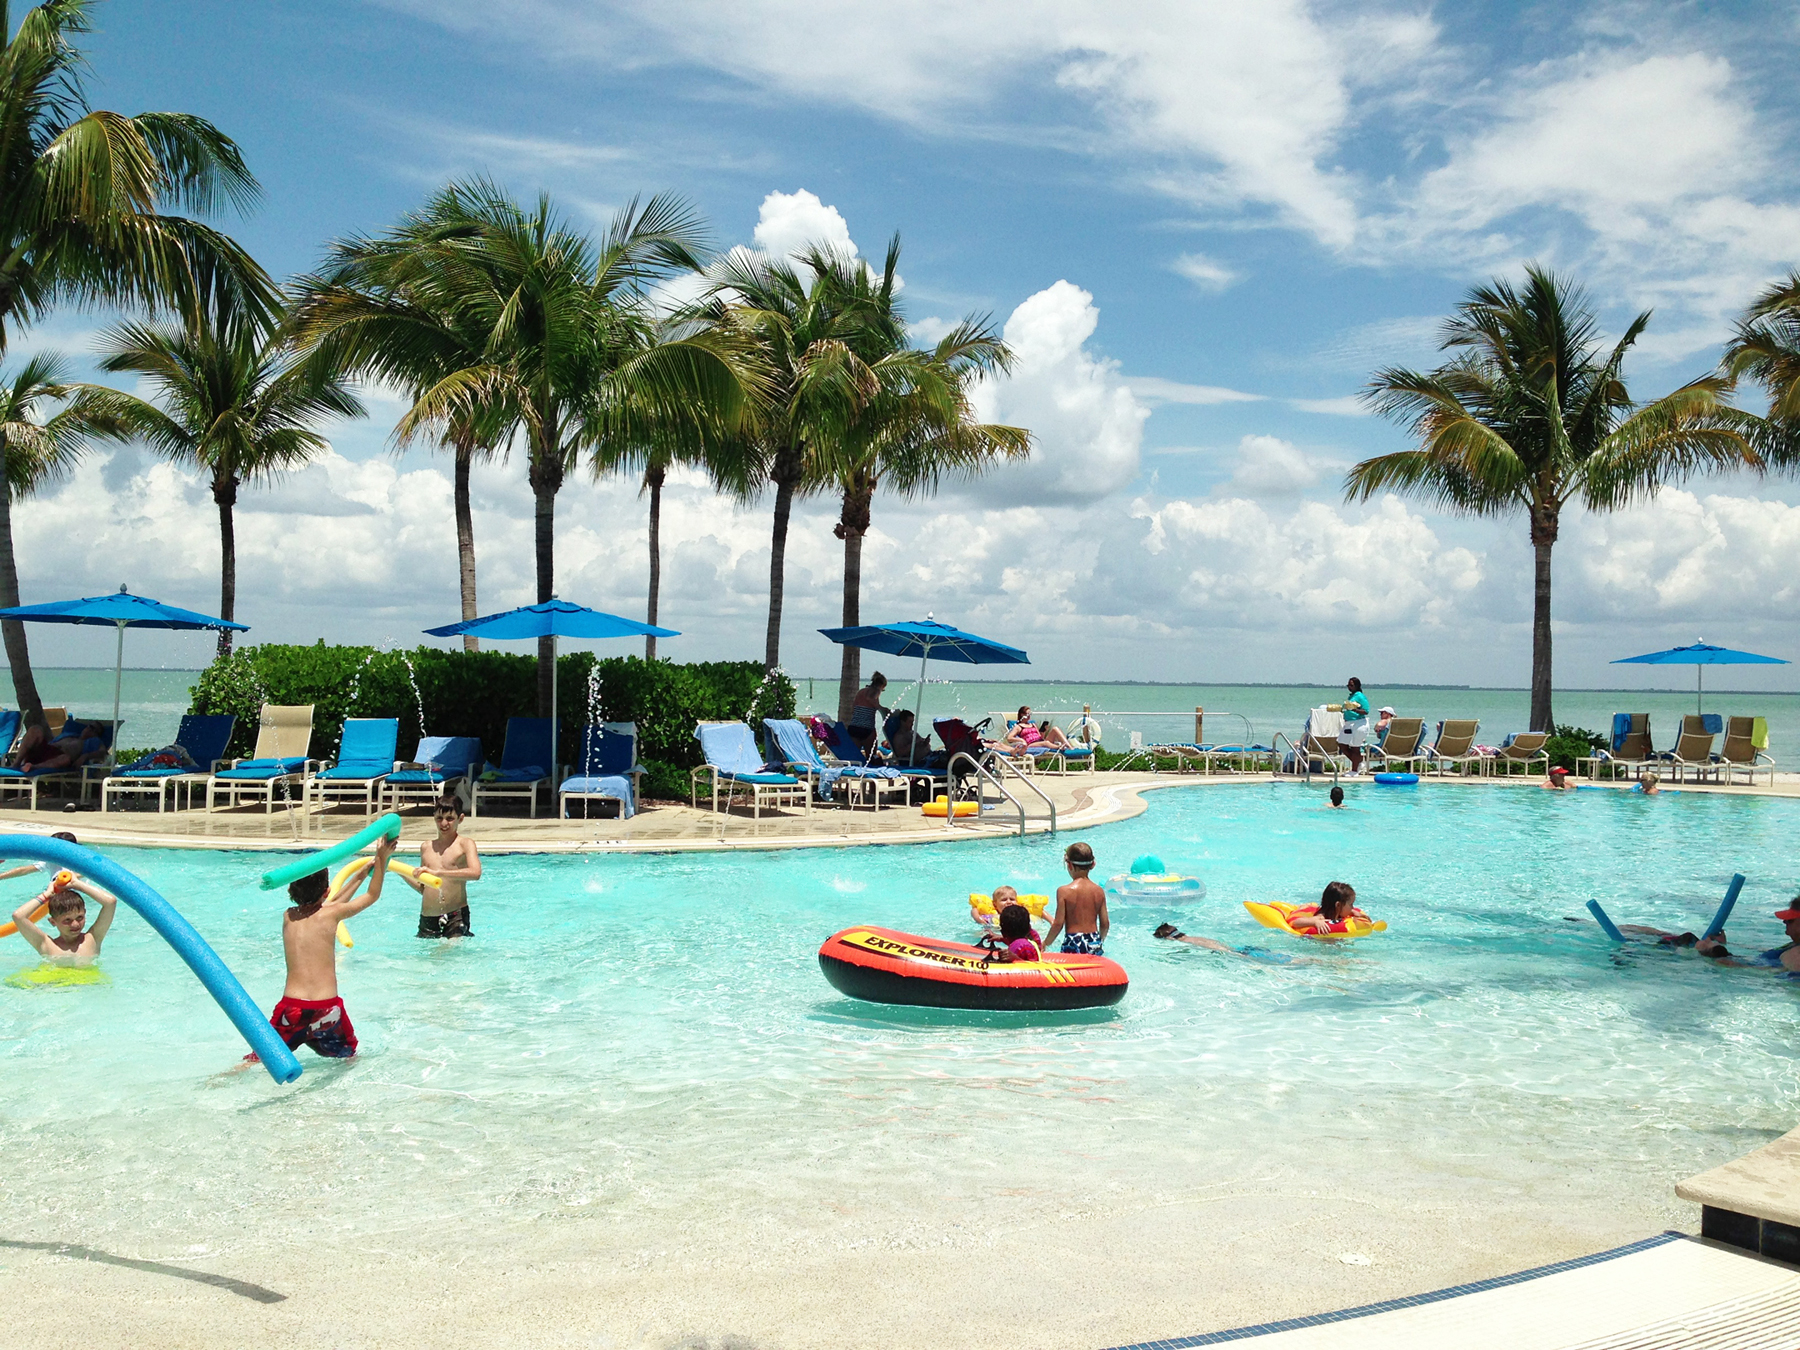 Hotel Sanibel Island Beach Resort